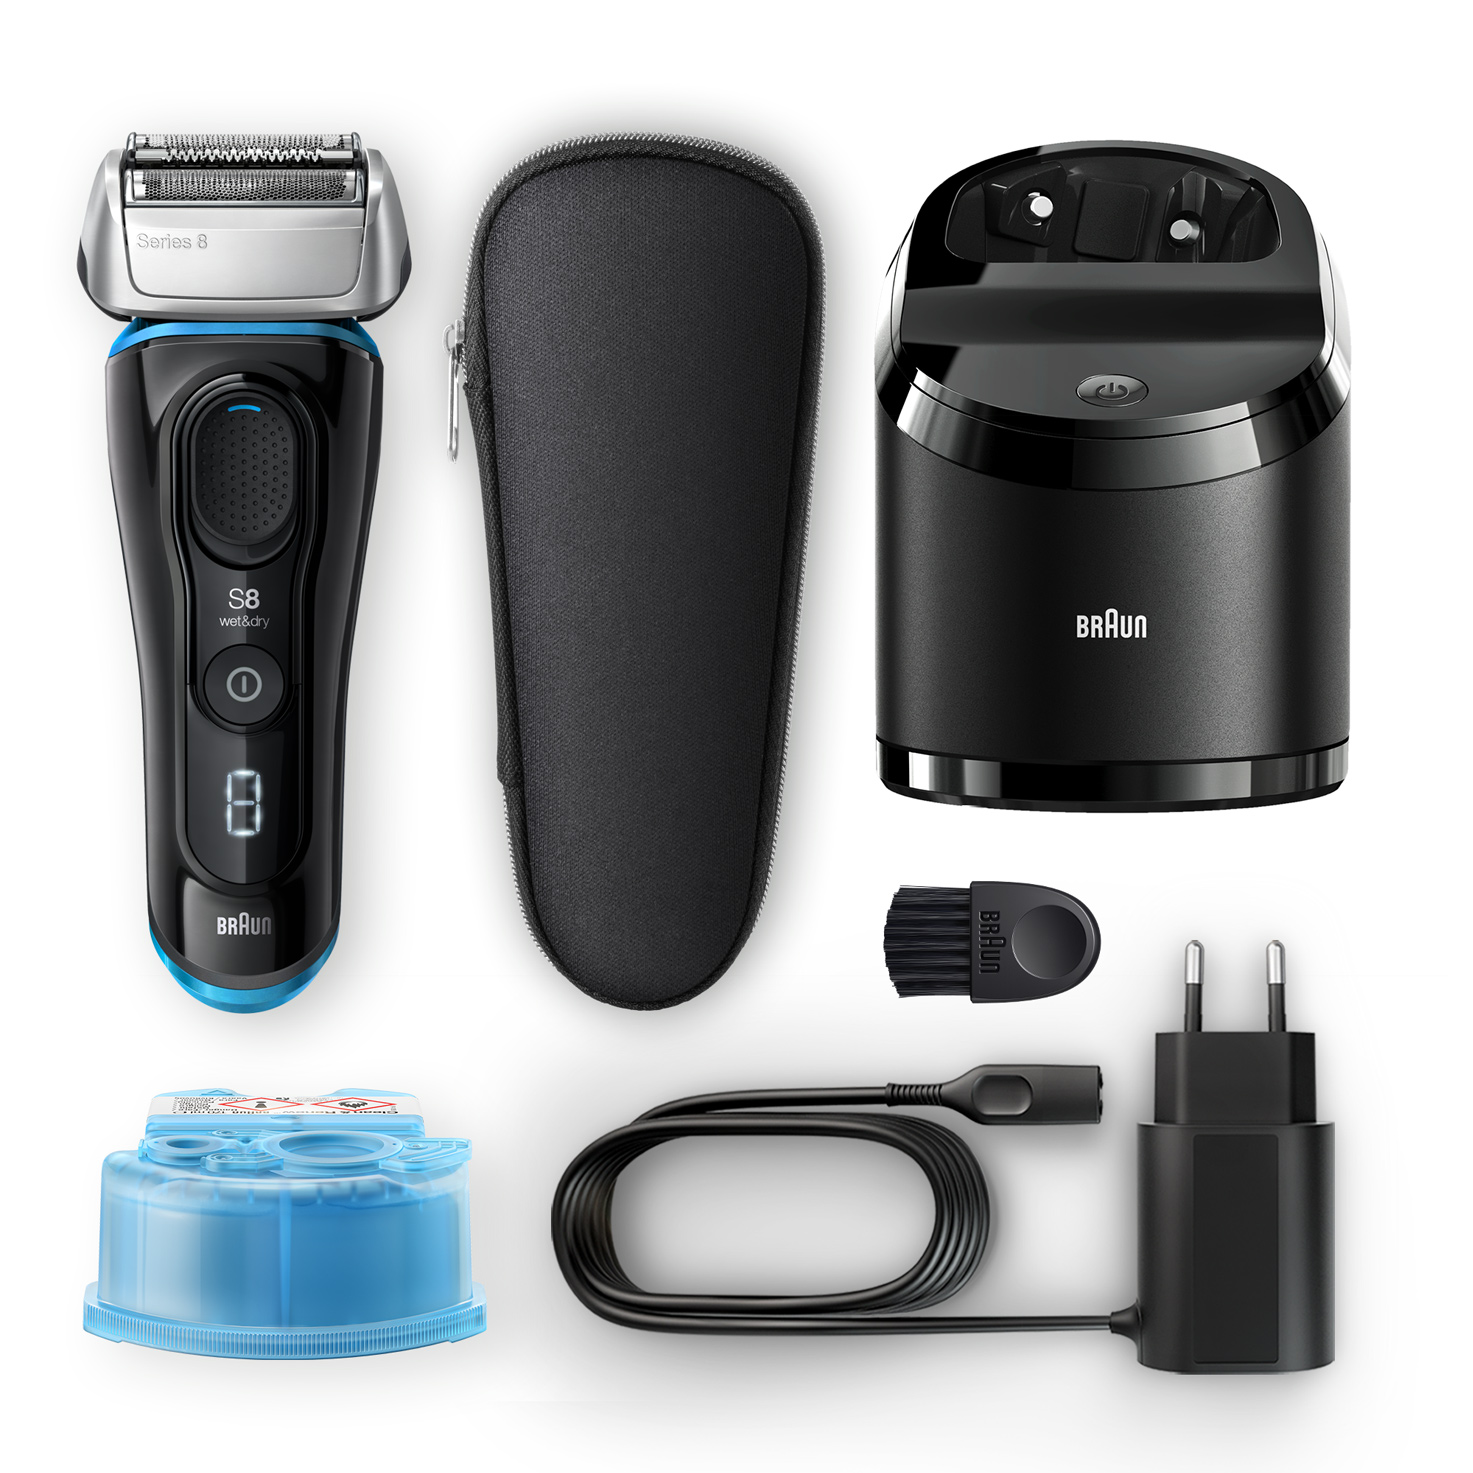 Series 8 8385cc shaver - What´s in the box